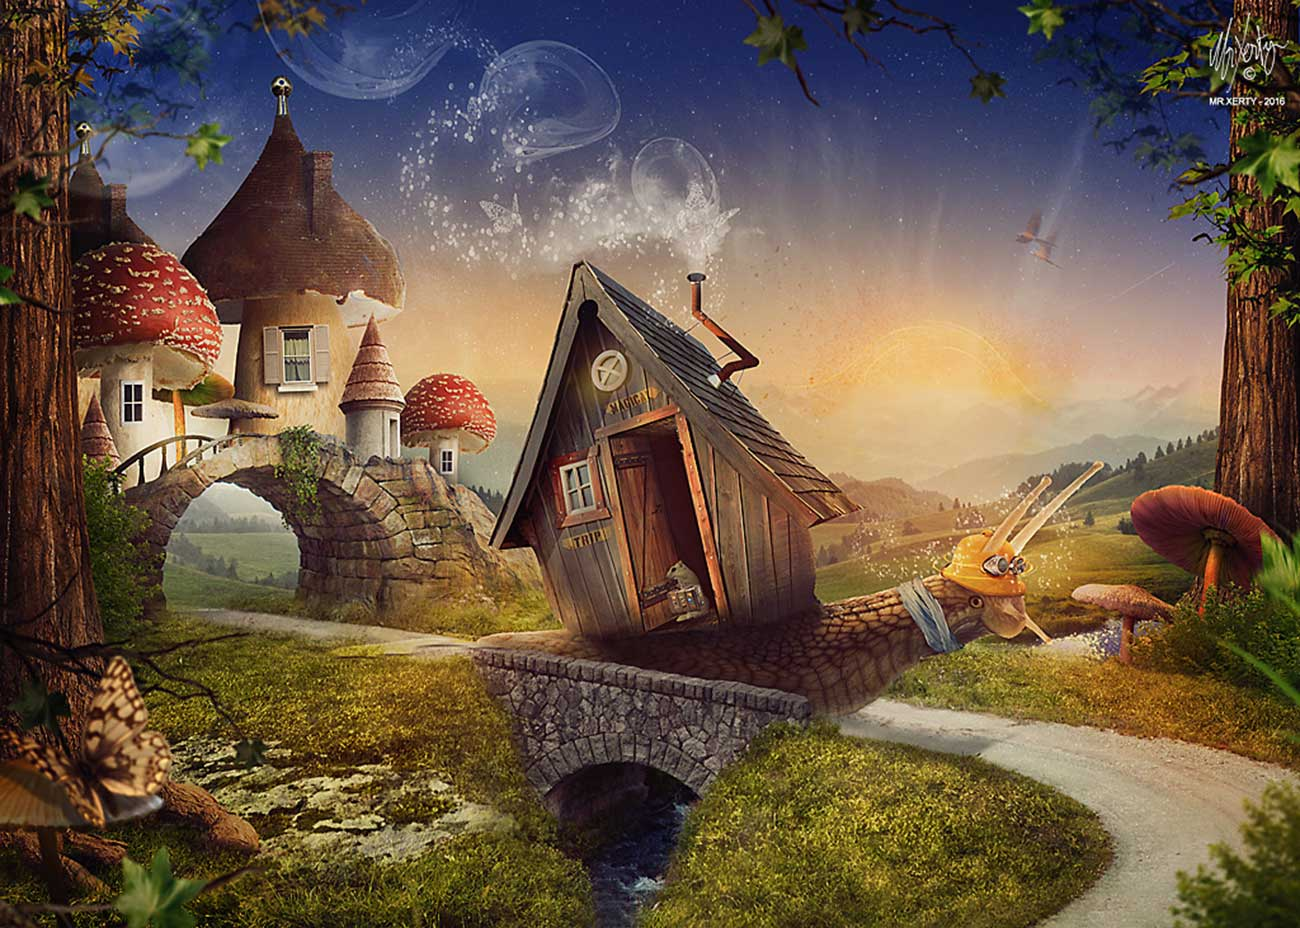 photoshop manipulation the travel in